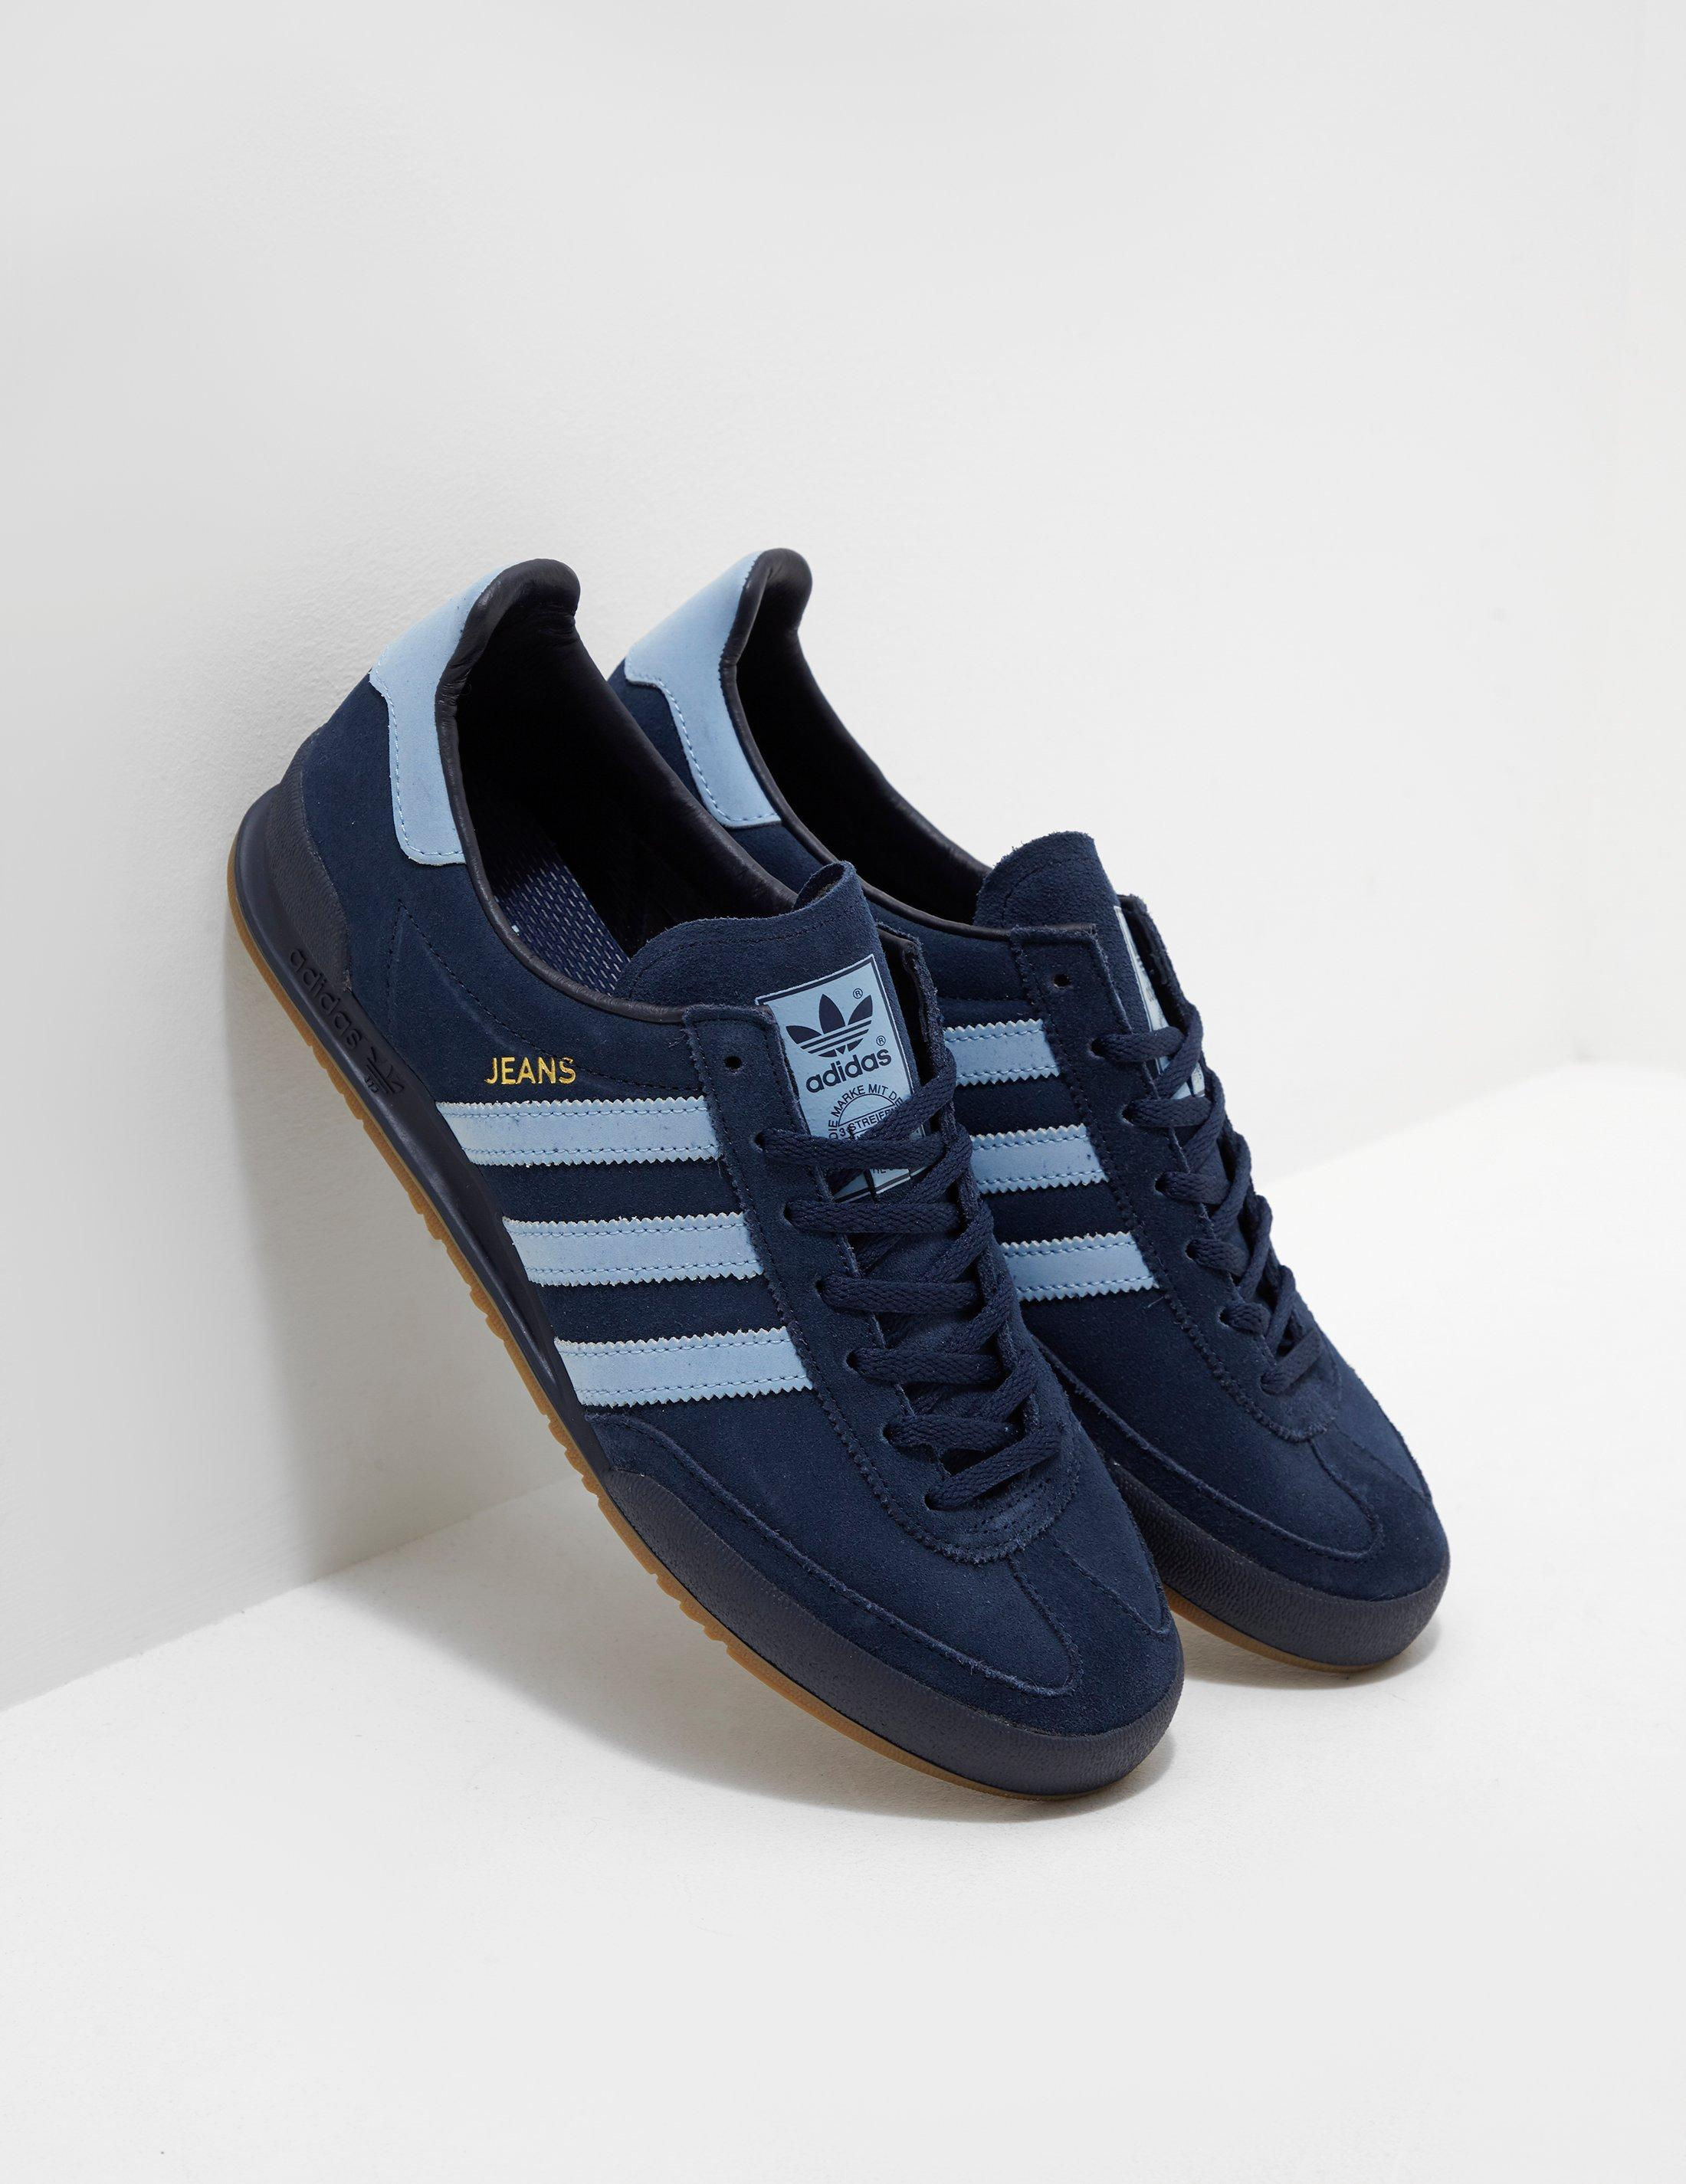 aeacdac1310b adidas Originals Jeans Navy Blue in Blue for Men - Lyst